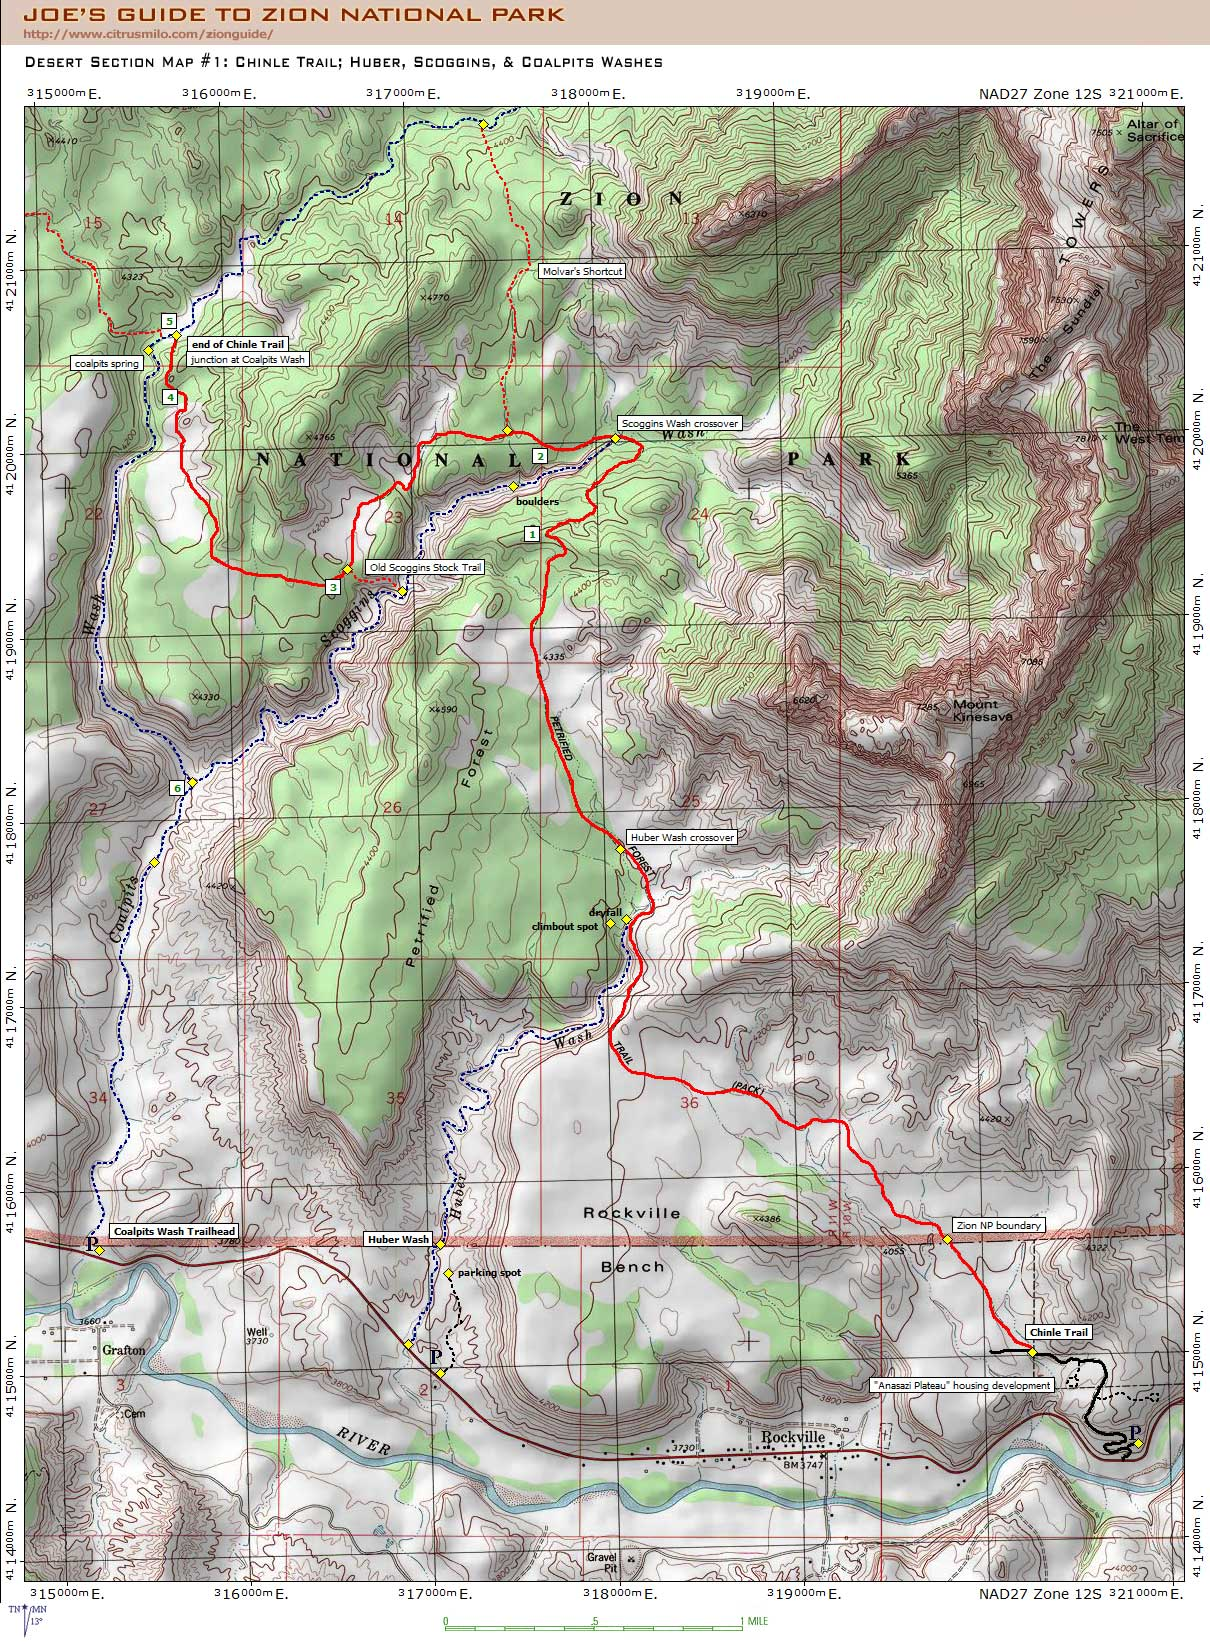 Joe's Guide to Zion National Park - Chinle Trail Topo Map